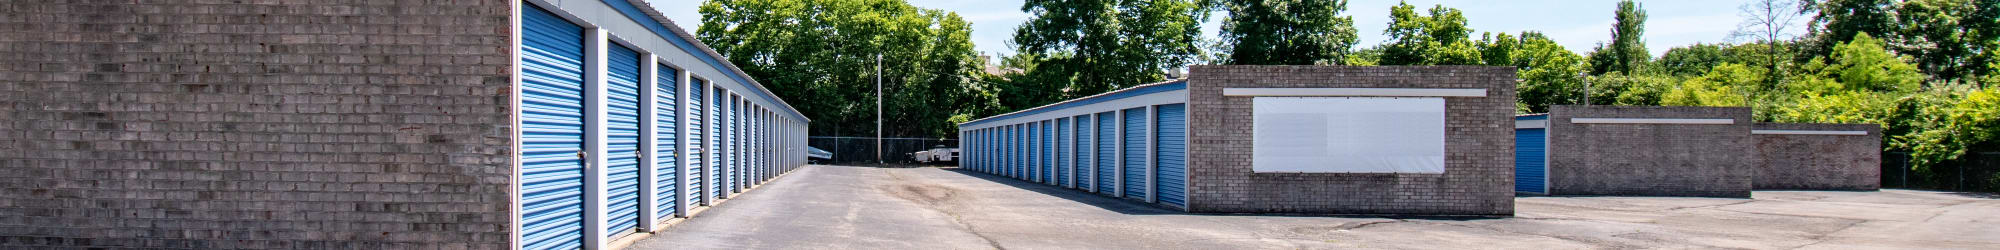 Storage Inns of America offers units for rent in Beavercreek, Ohio